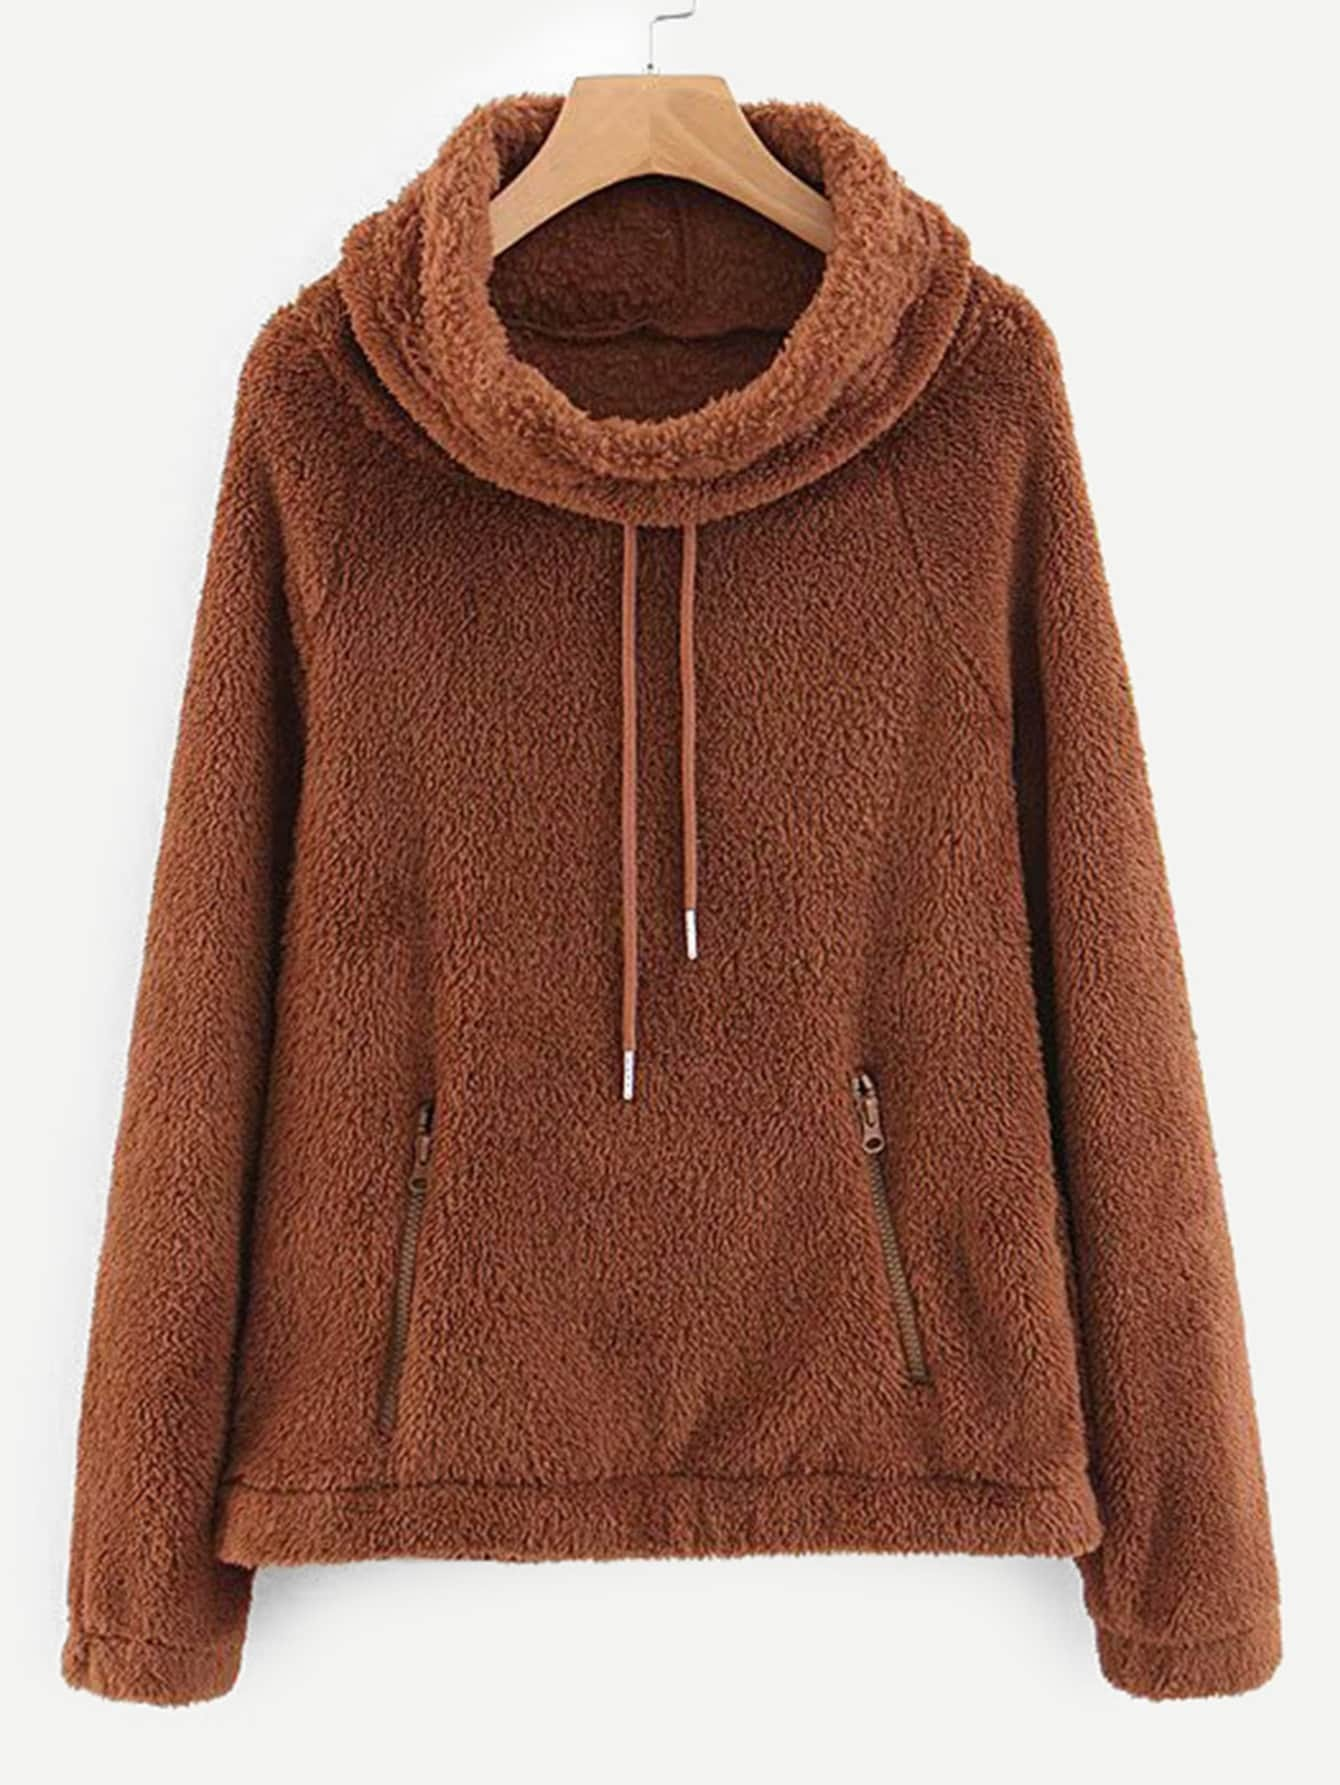 Zip Detail Drawstring Teddy Sweatshirt Zip Detail Drawstring Teddy Sweatshirt